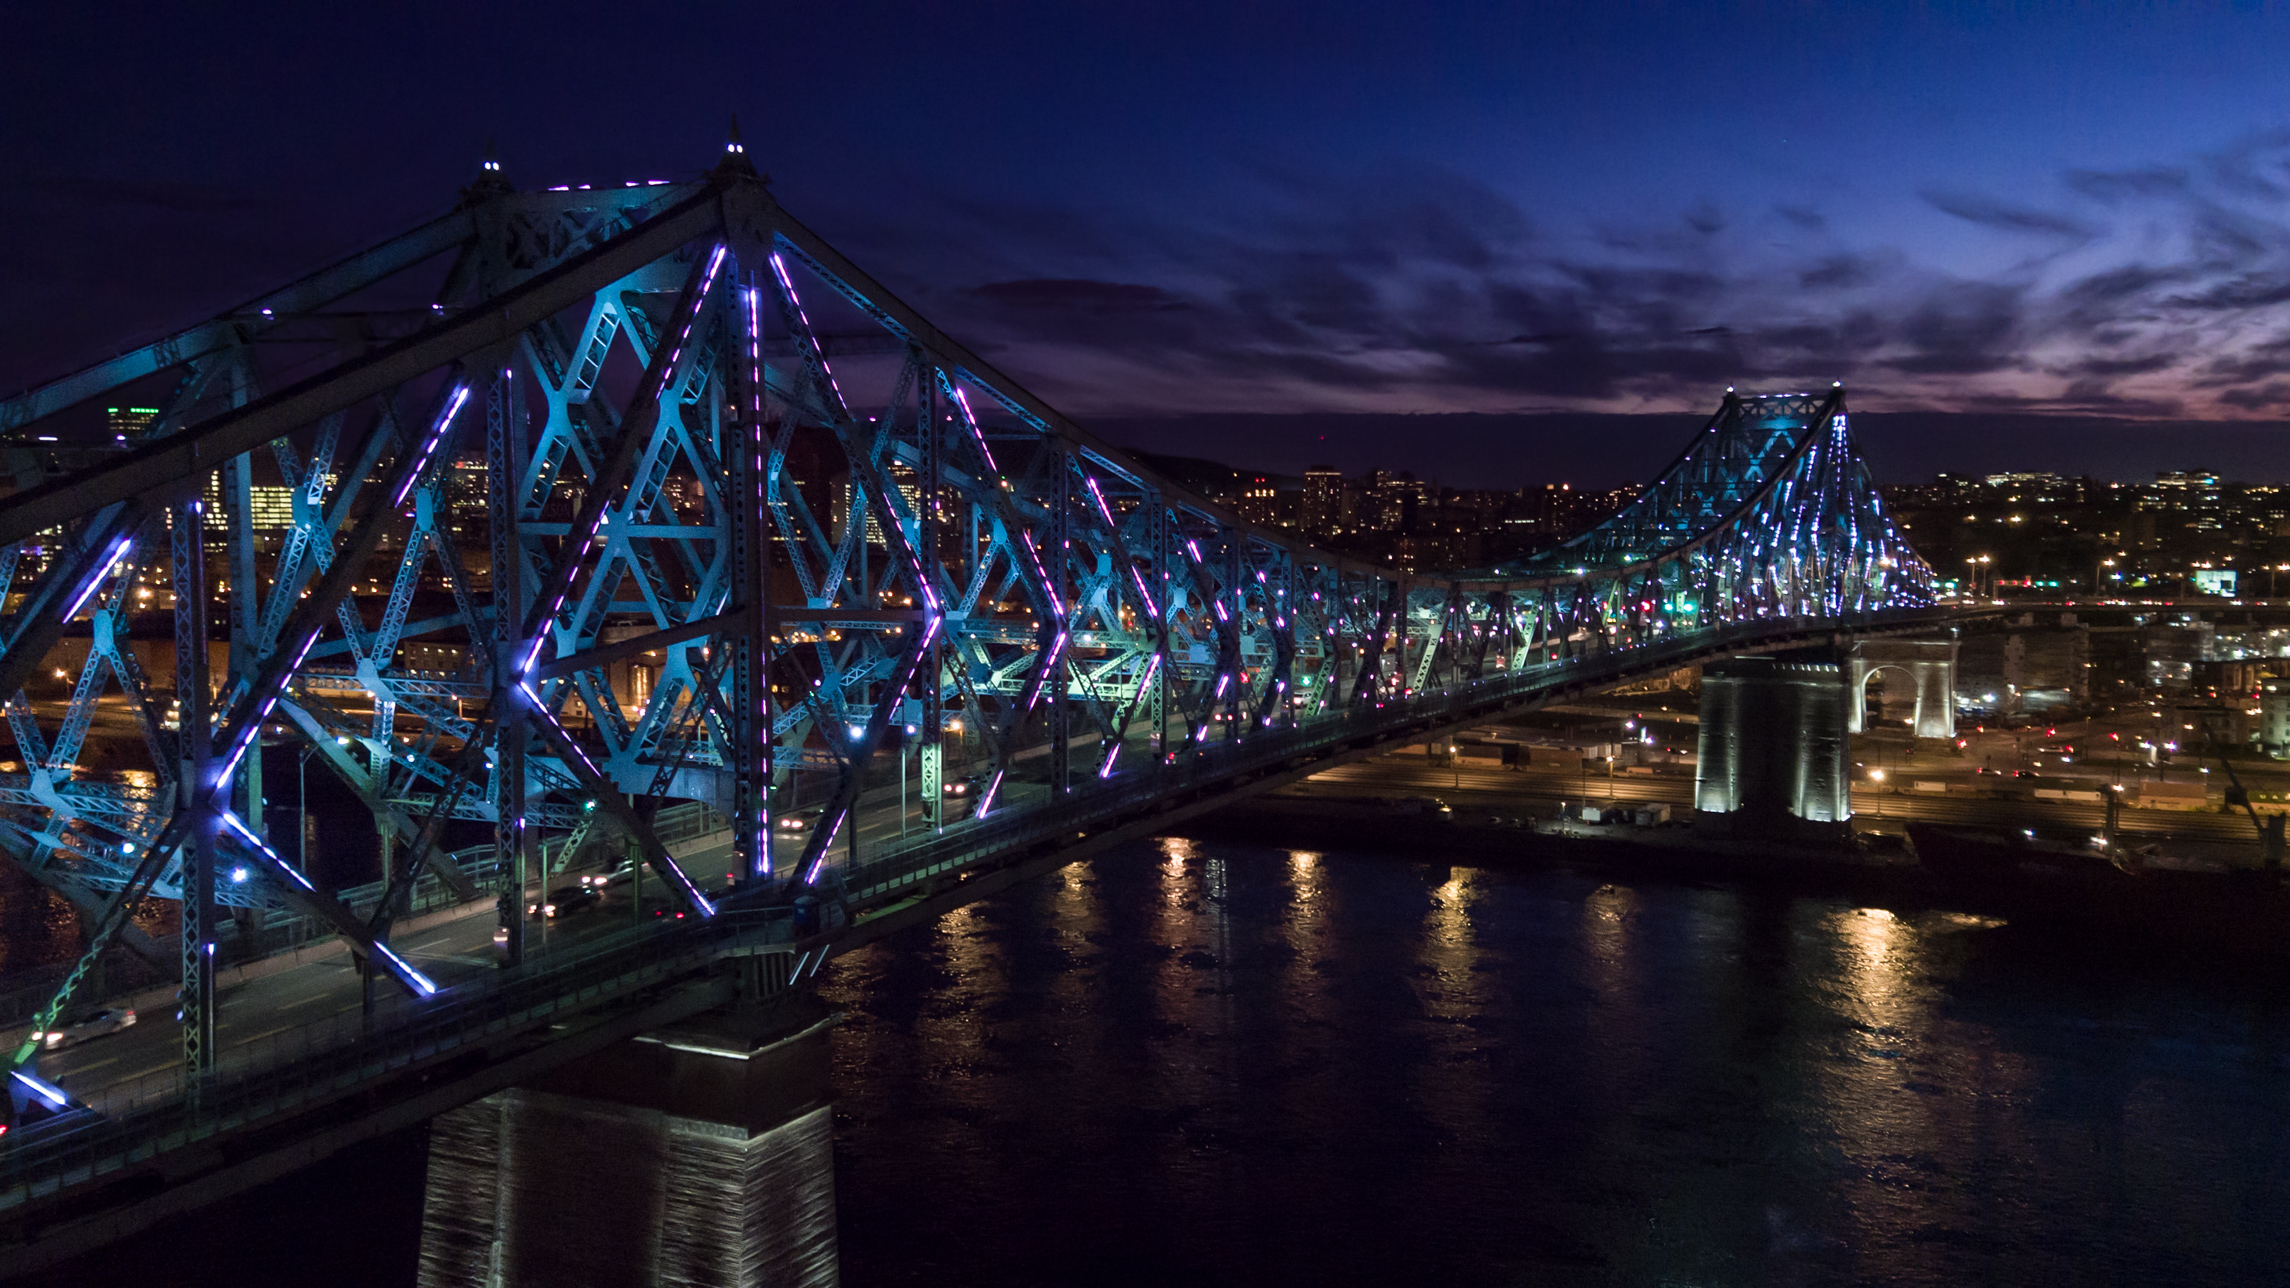 Jacques Cartier bridge lights | Moment Factory